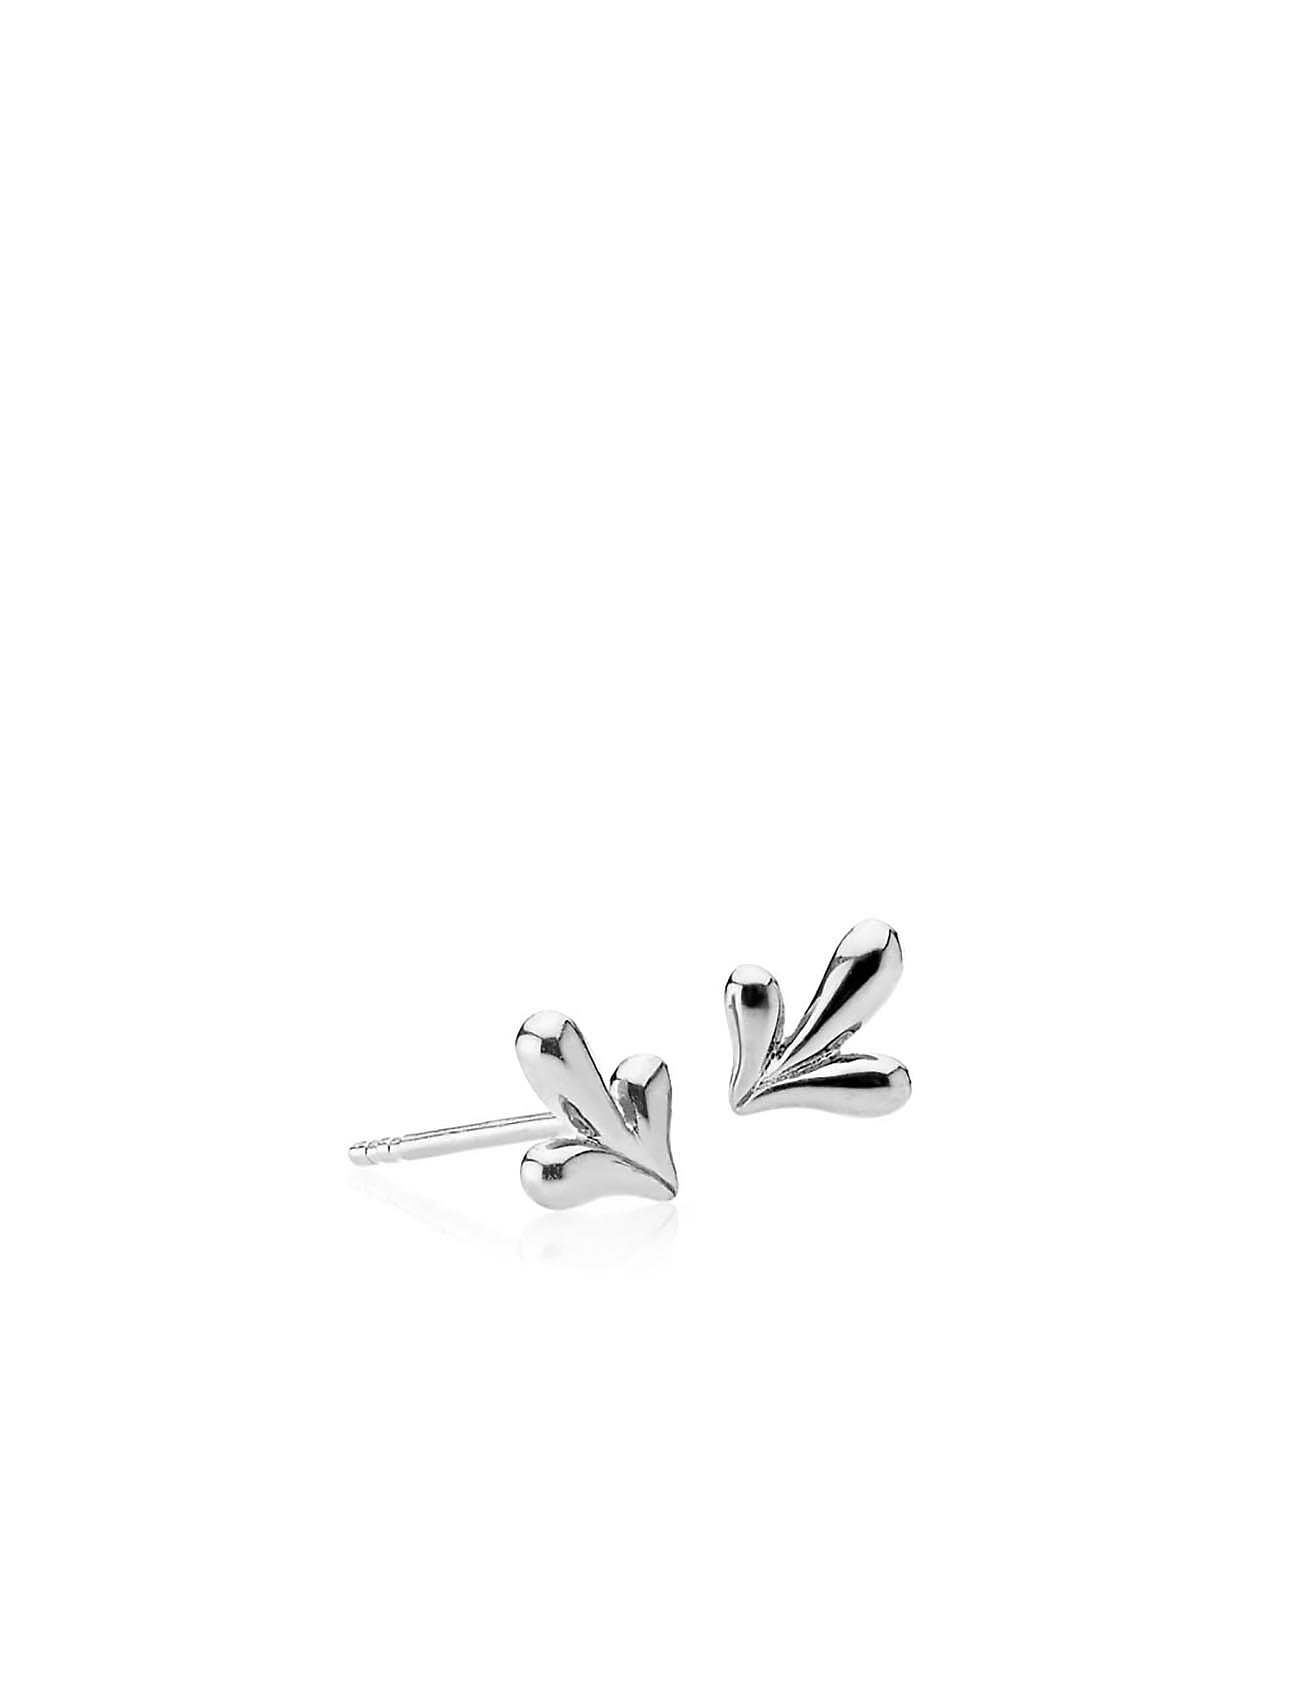 Image of Embrace Earstick Accessories Jewellery Earrings Studs Sølv Izabel Camille (2964975275)